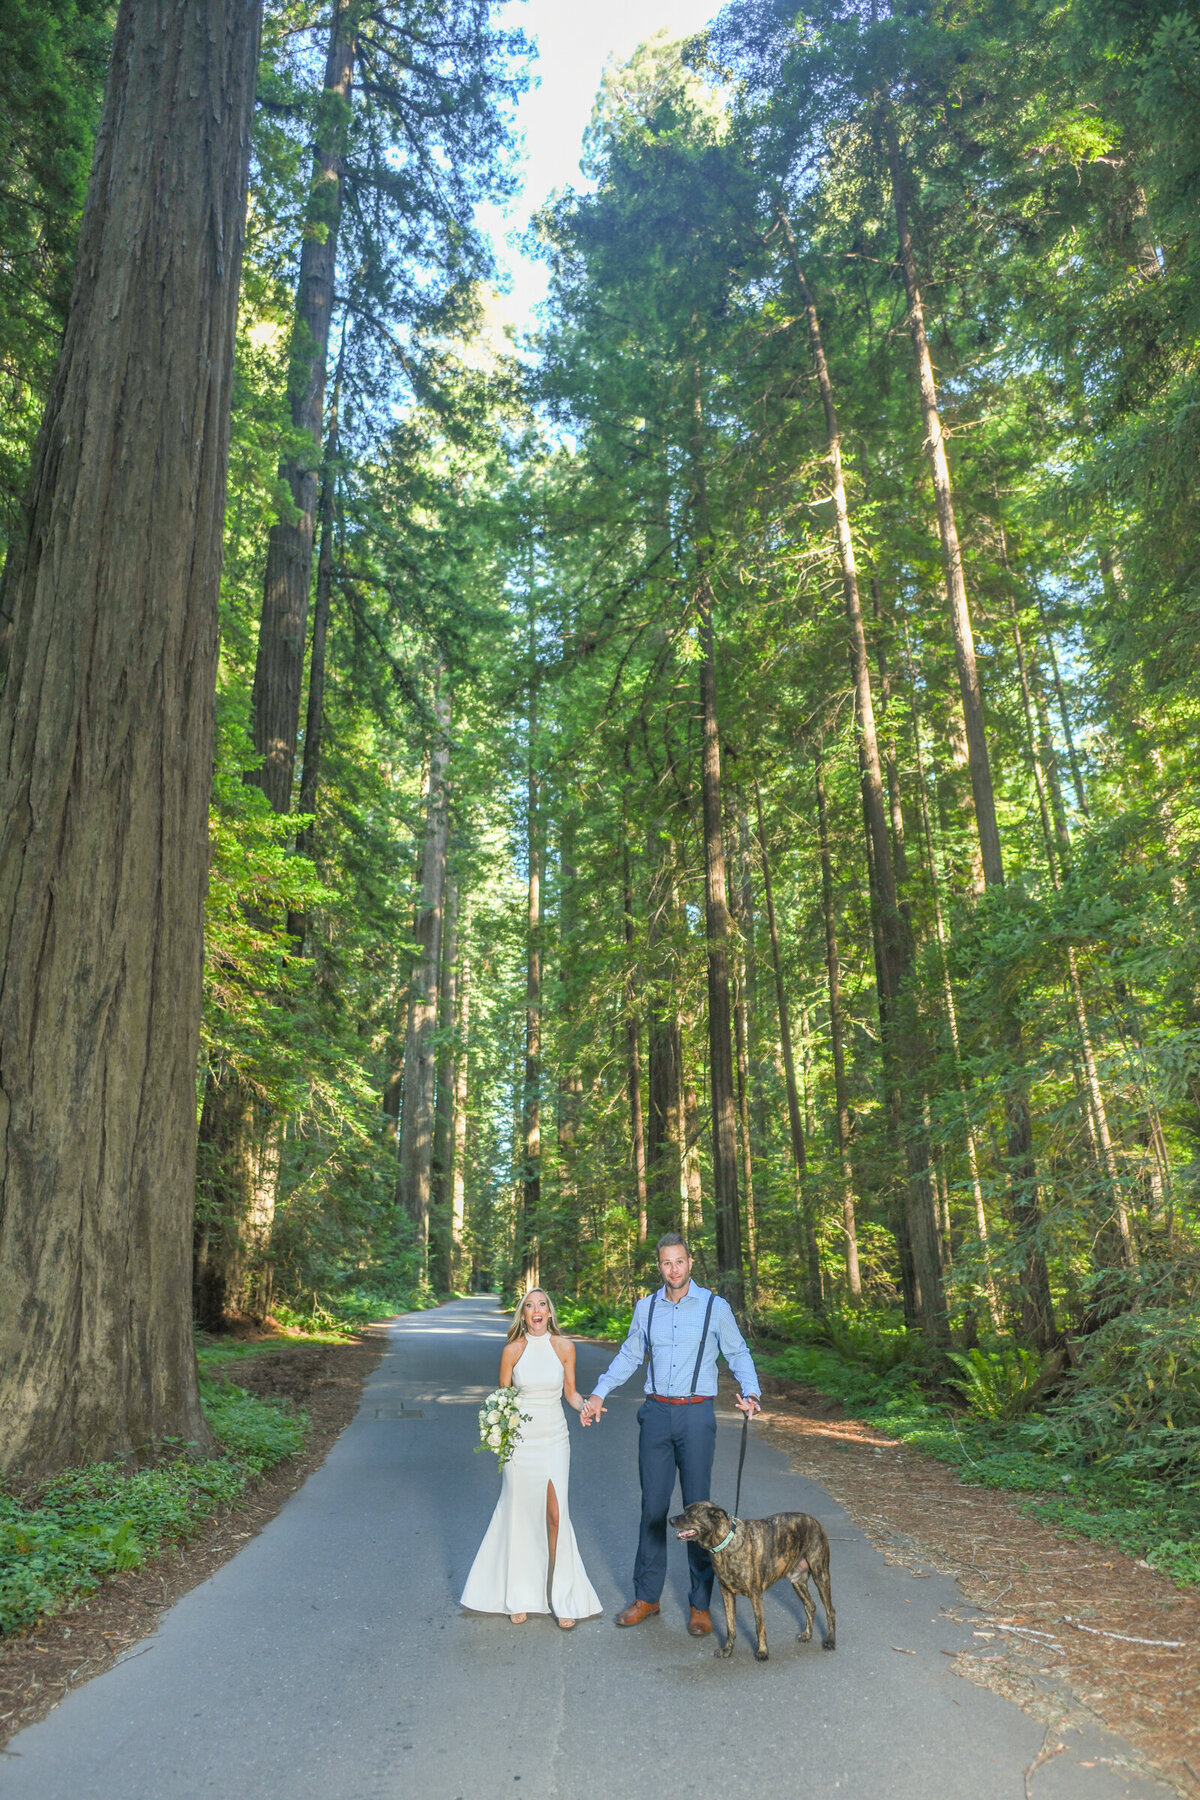 Humboldt-County-Elopement-Photographer-Redwoods-Avenue-of-the-Giants-Humboldt-Redwoods-Redwood-National-Park-Parky's-Pics-Coastal-Redwoods-Elopements-50